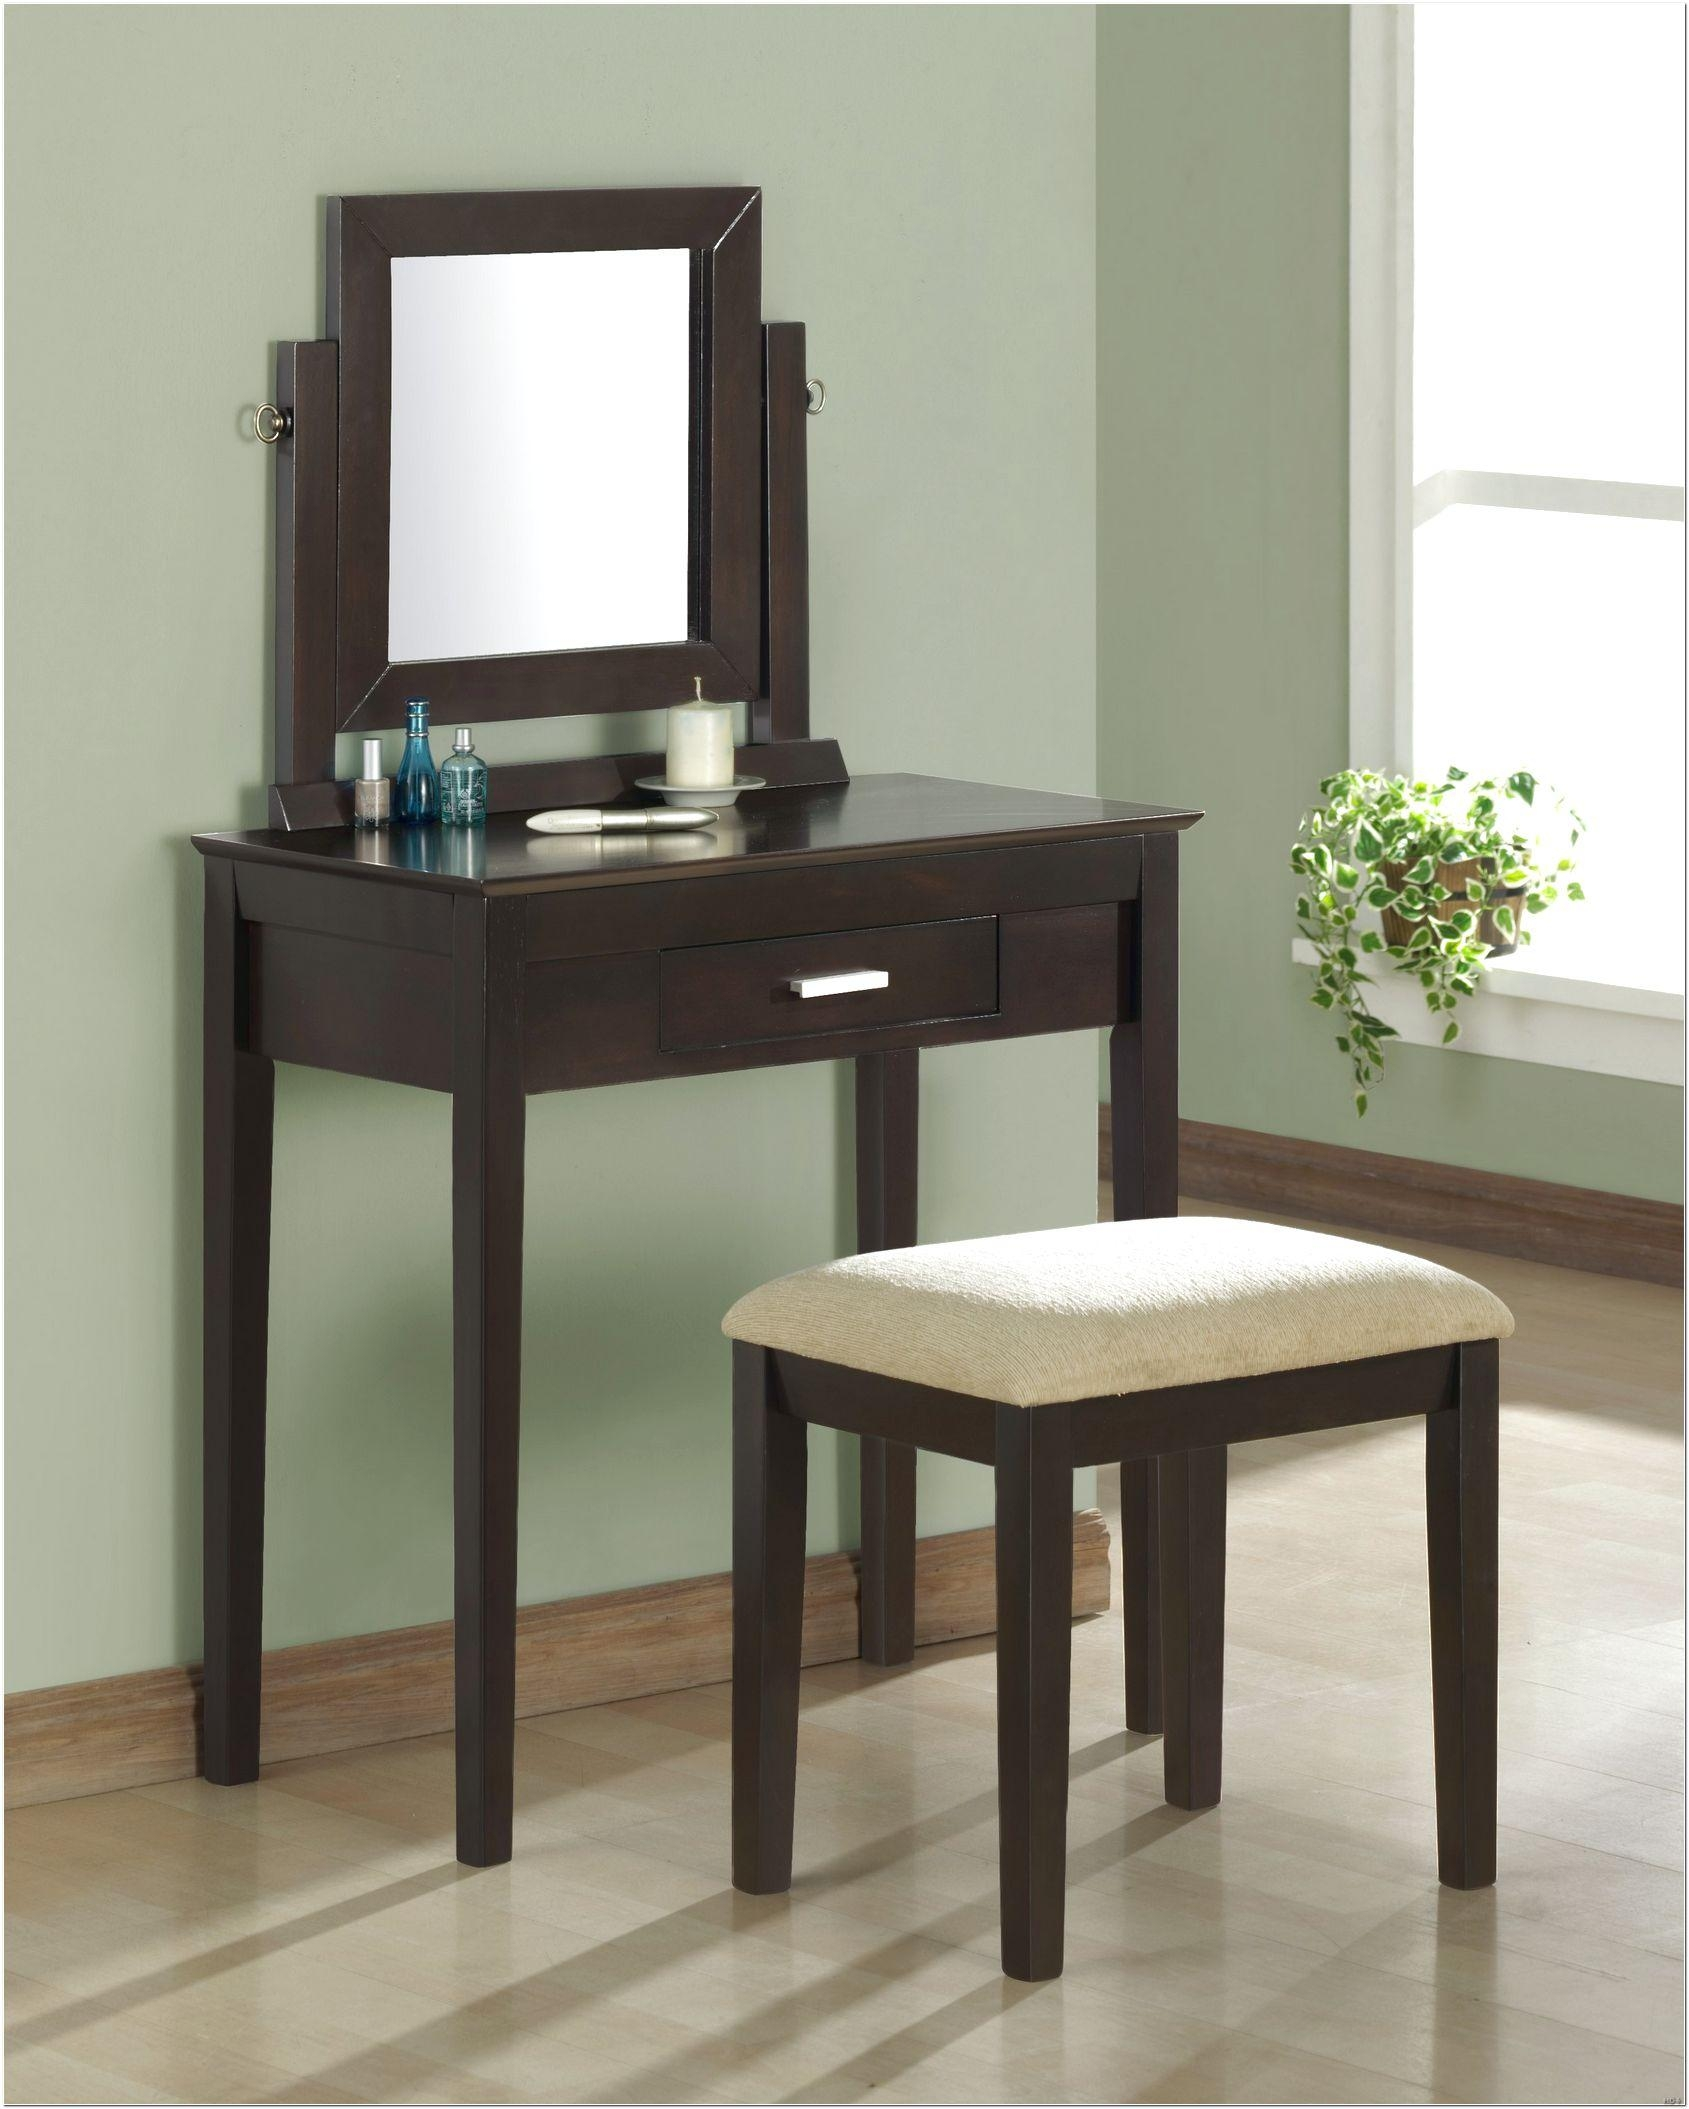 Black Dressing Table Mirror Design Ideas – Interior Design For In Black Dressing Mirror (Image 7 of 20)